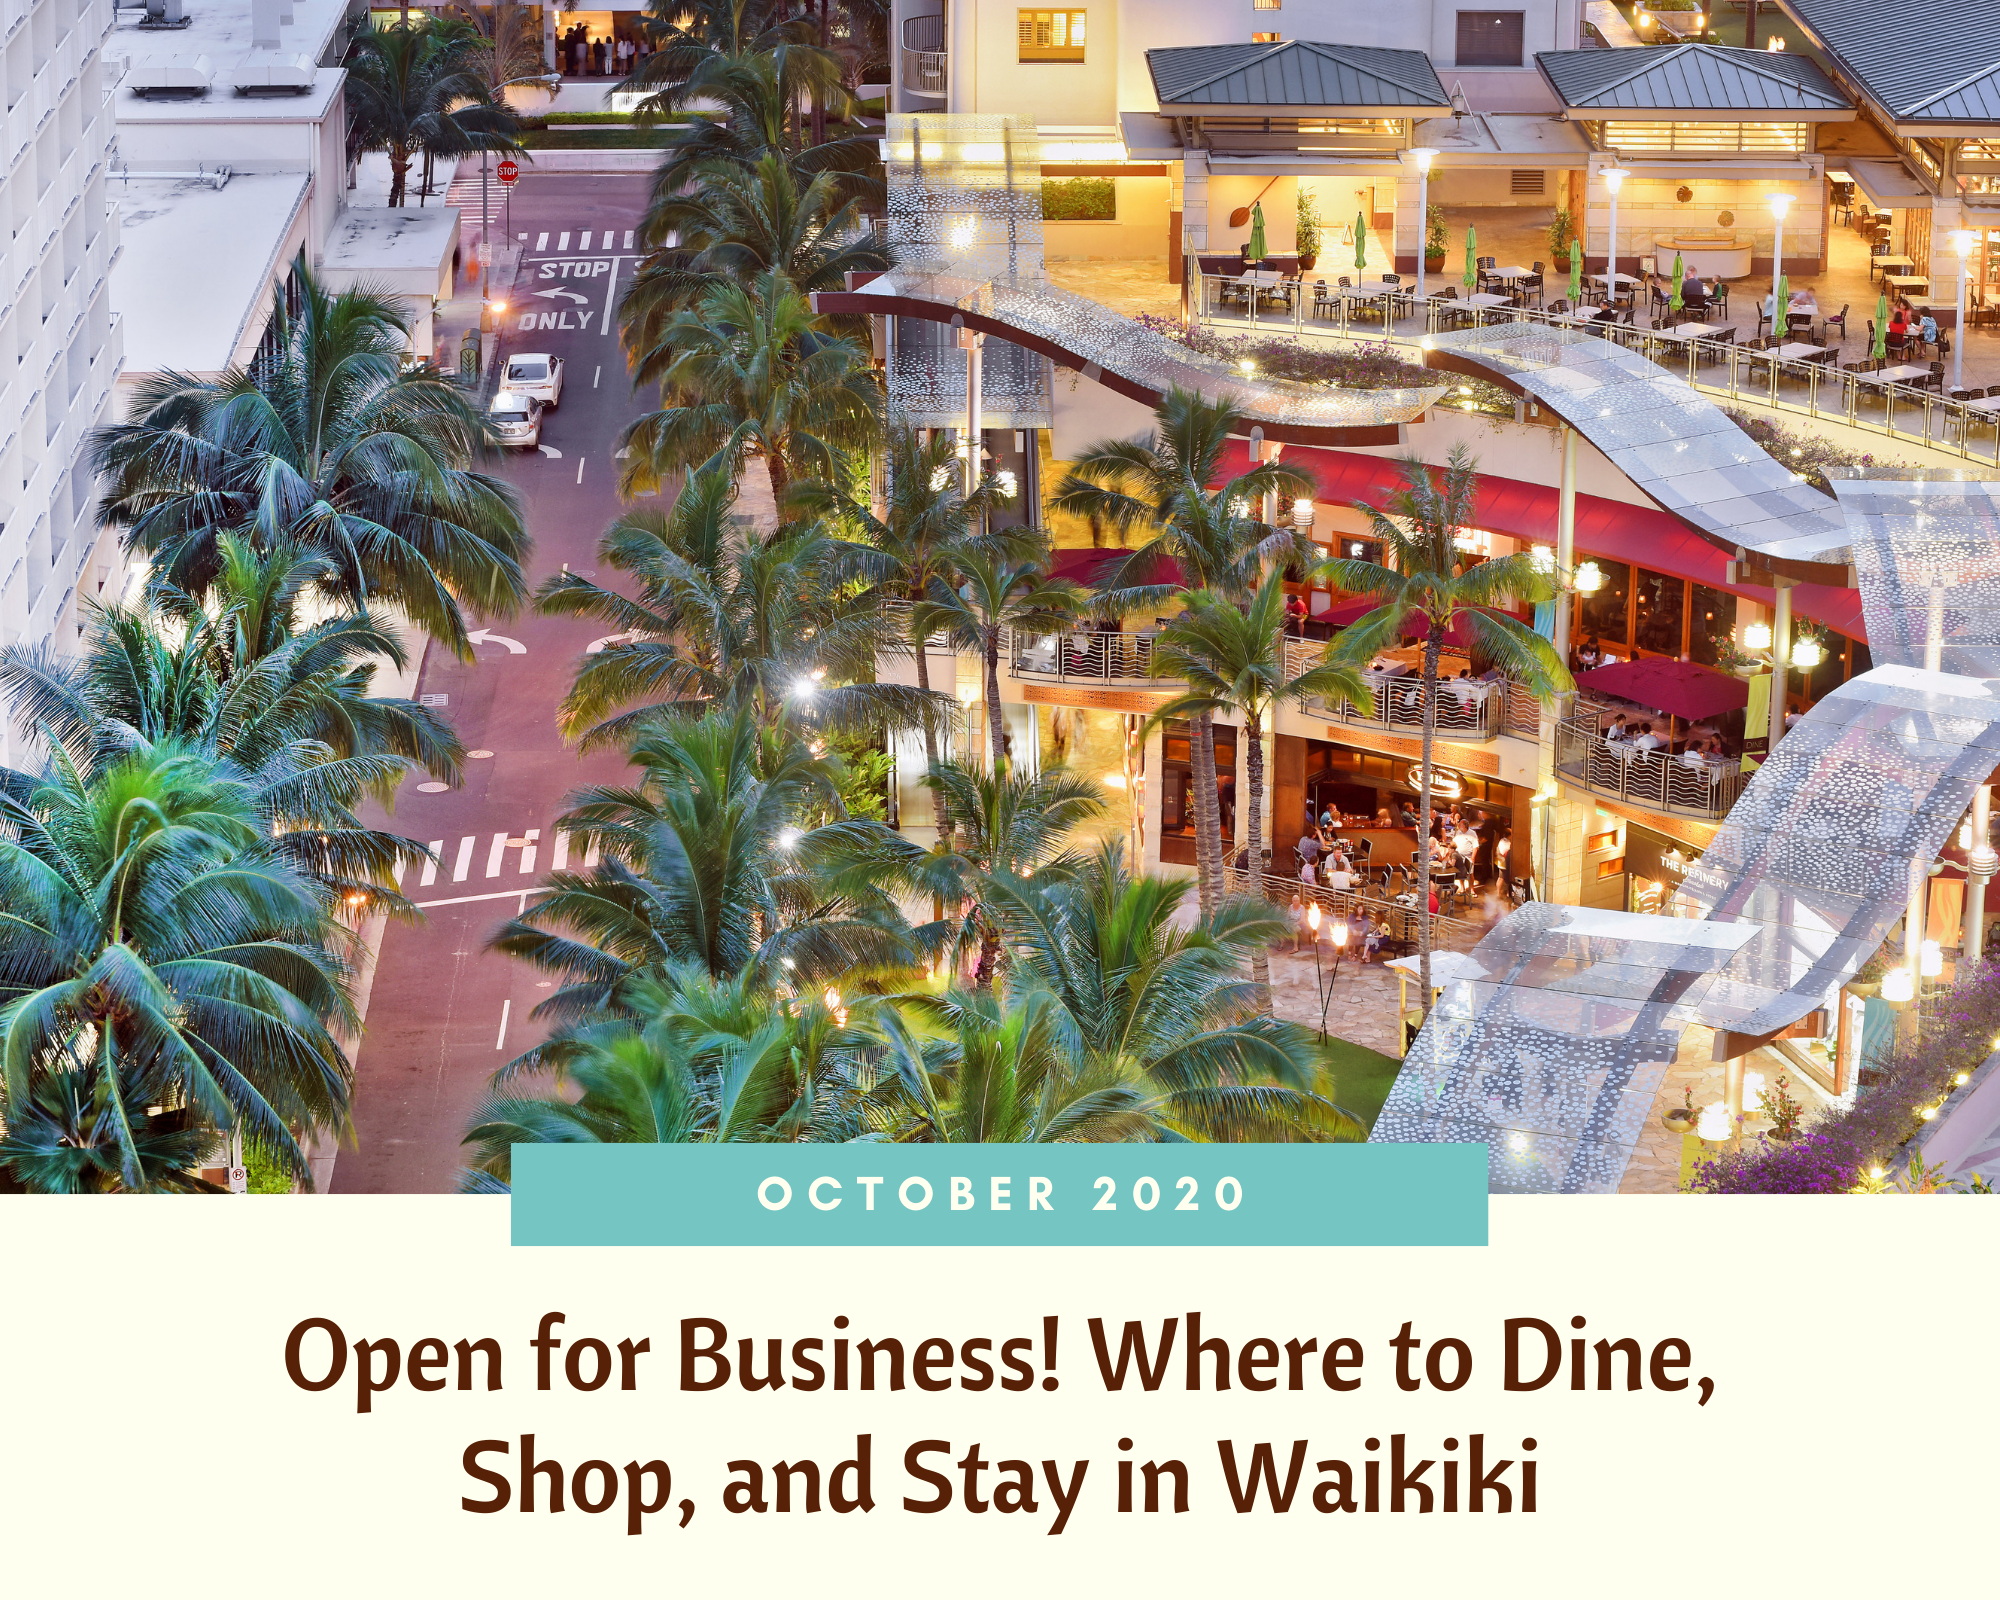 October 2020: Open for Business! Where to Dine, Shop, and Stay in Waikiki